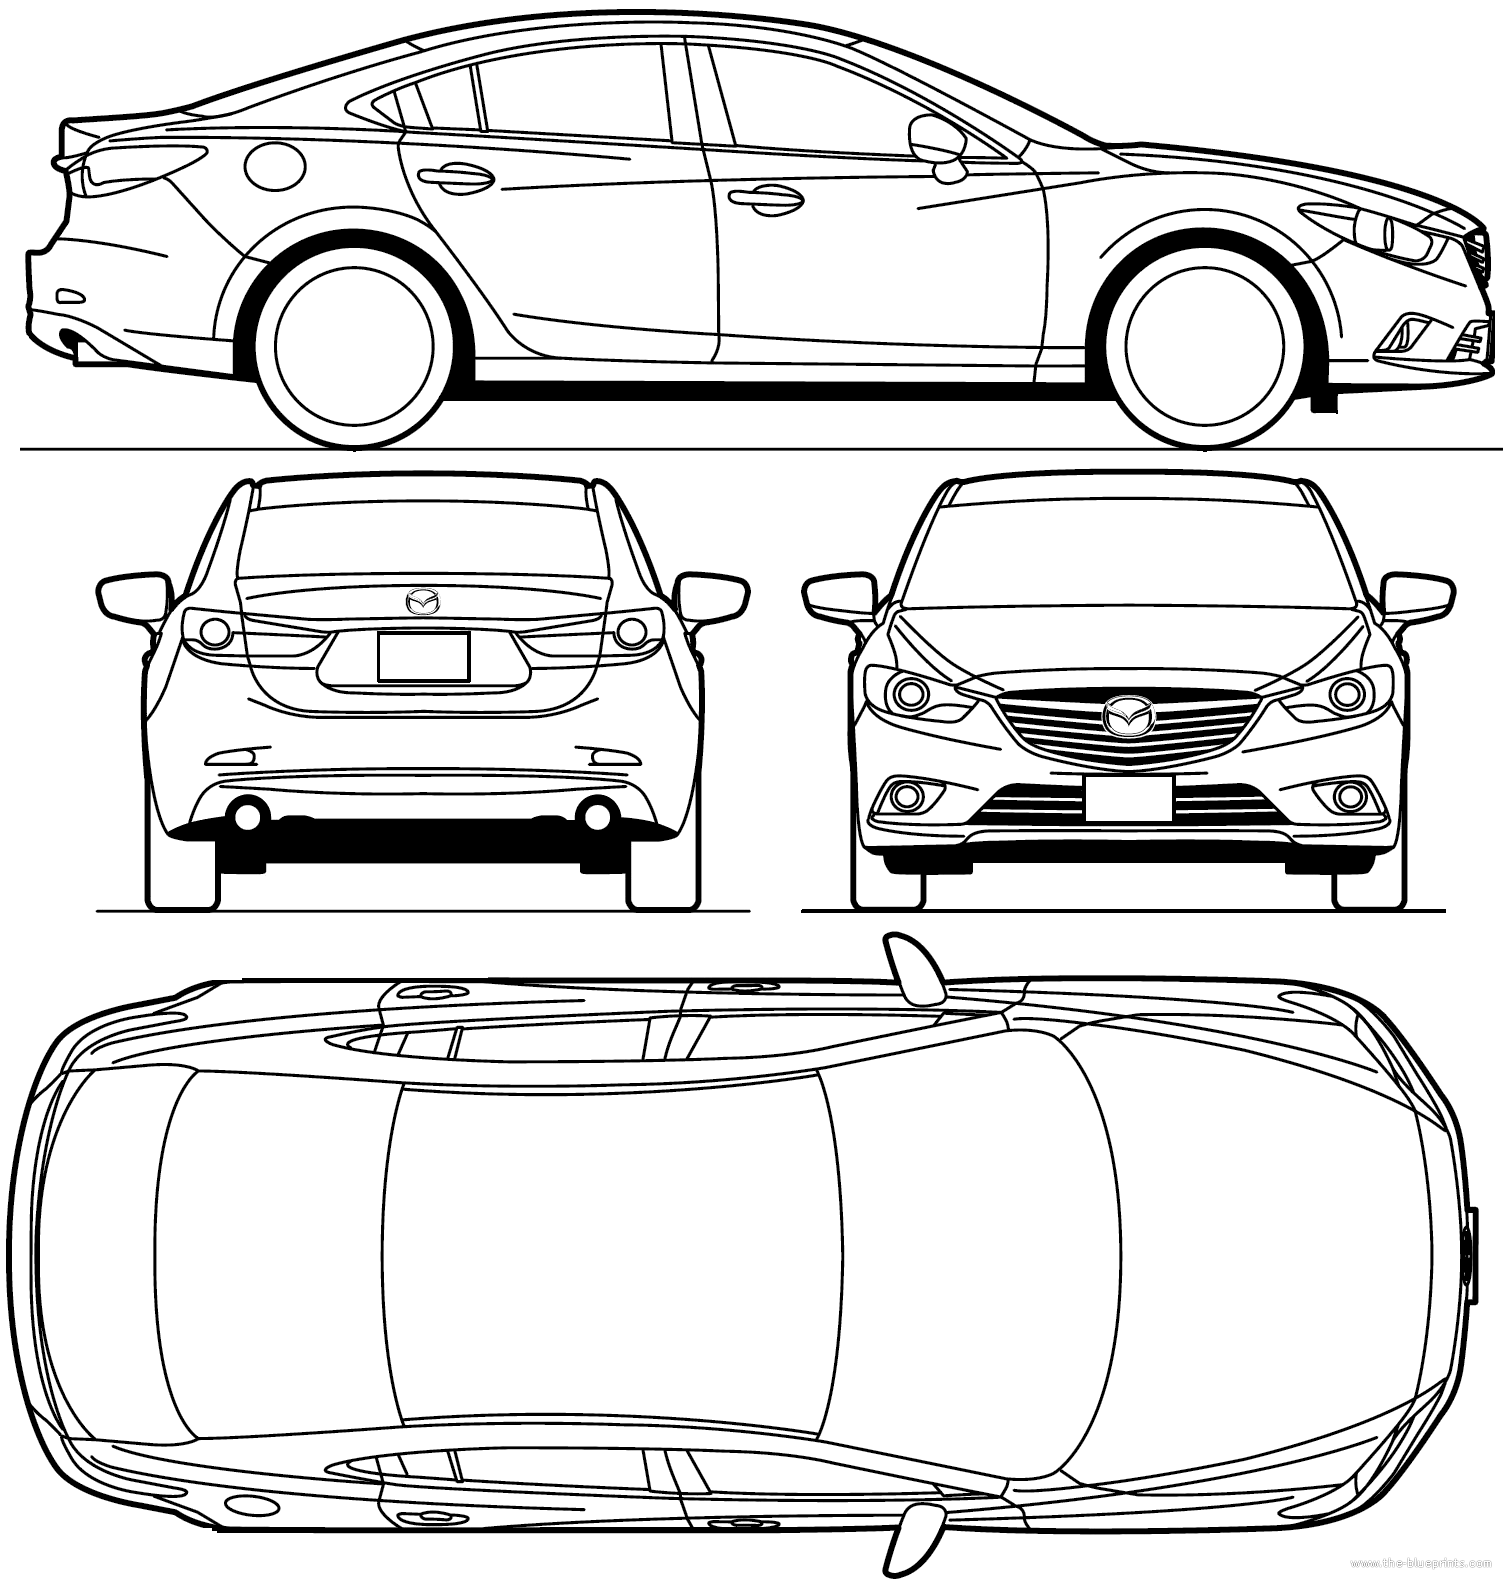 Cgfrog most loved car blueprints for 3d modeling for Where to print blueprints